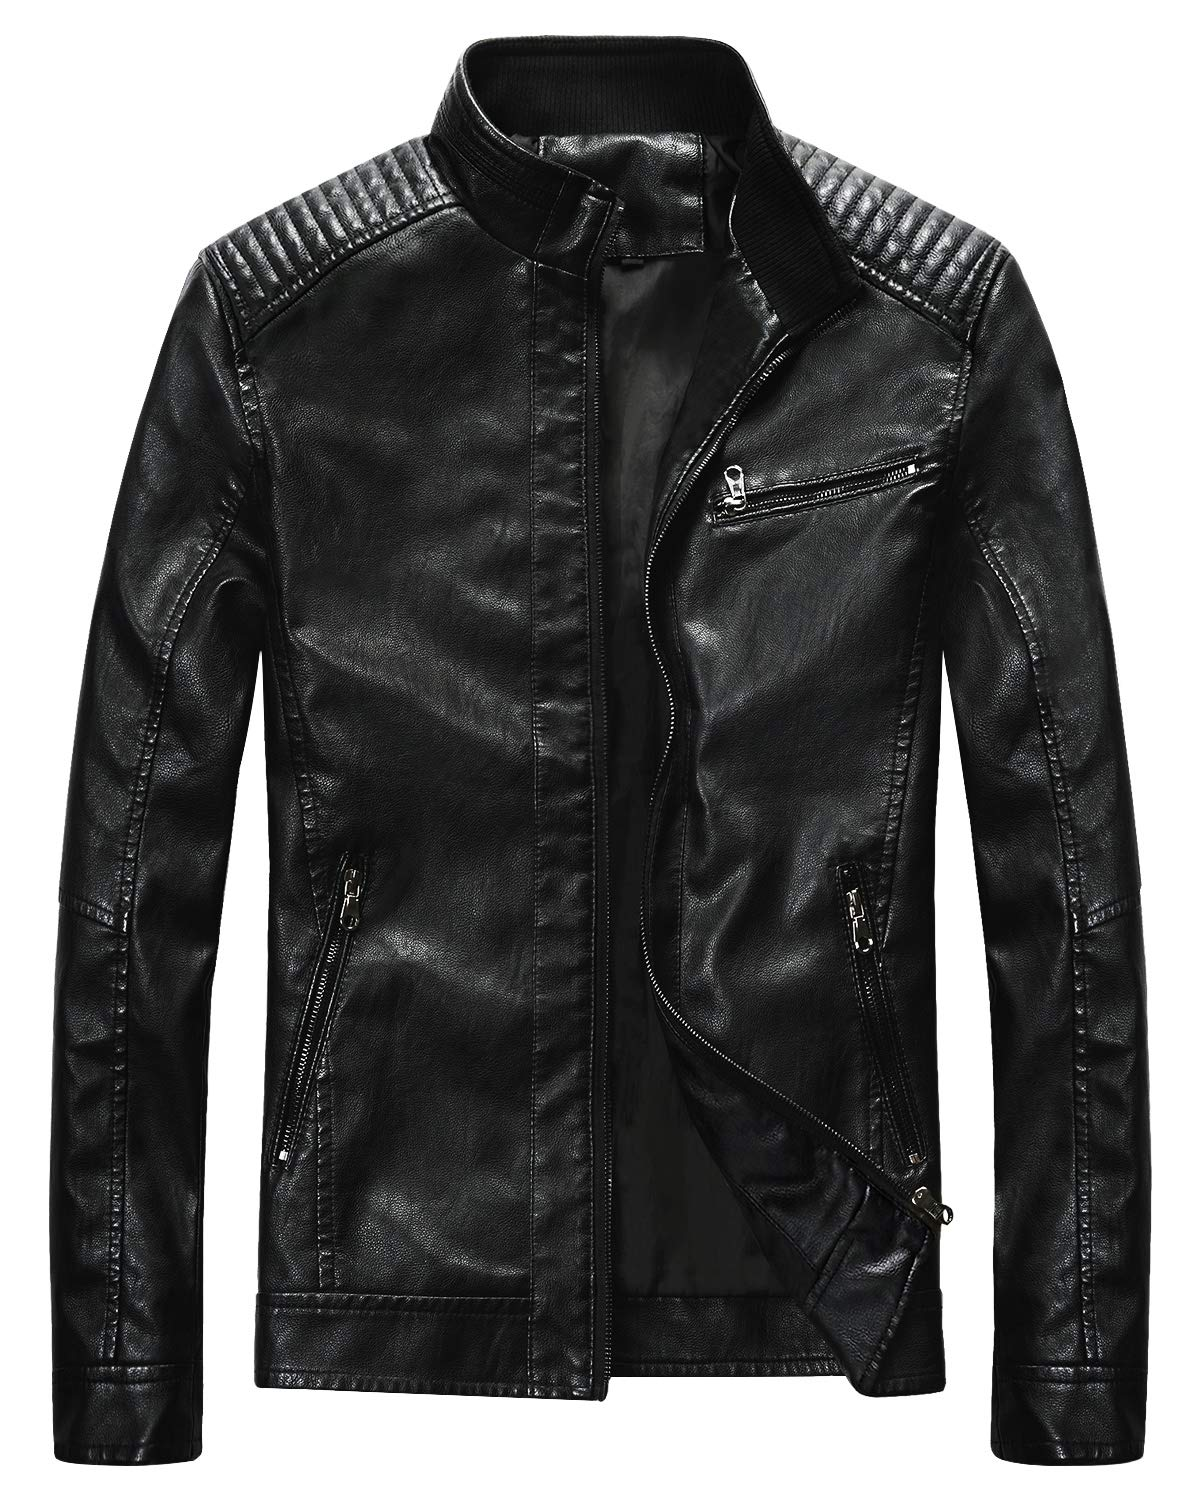 Fairylinks Leather Jacket Men Black Motocycle Lightweight Classic, Black, Small by Fairylinks